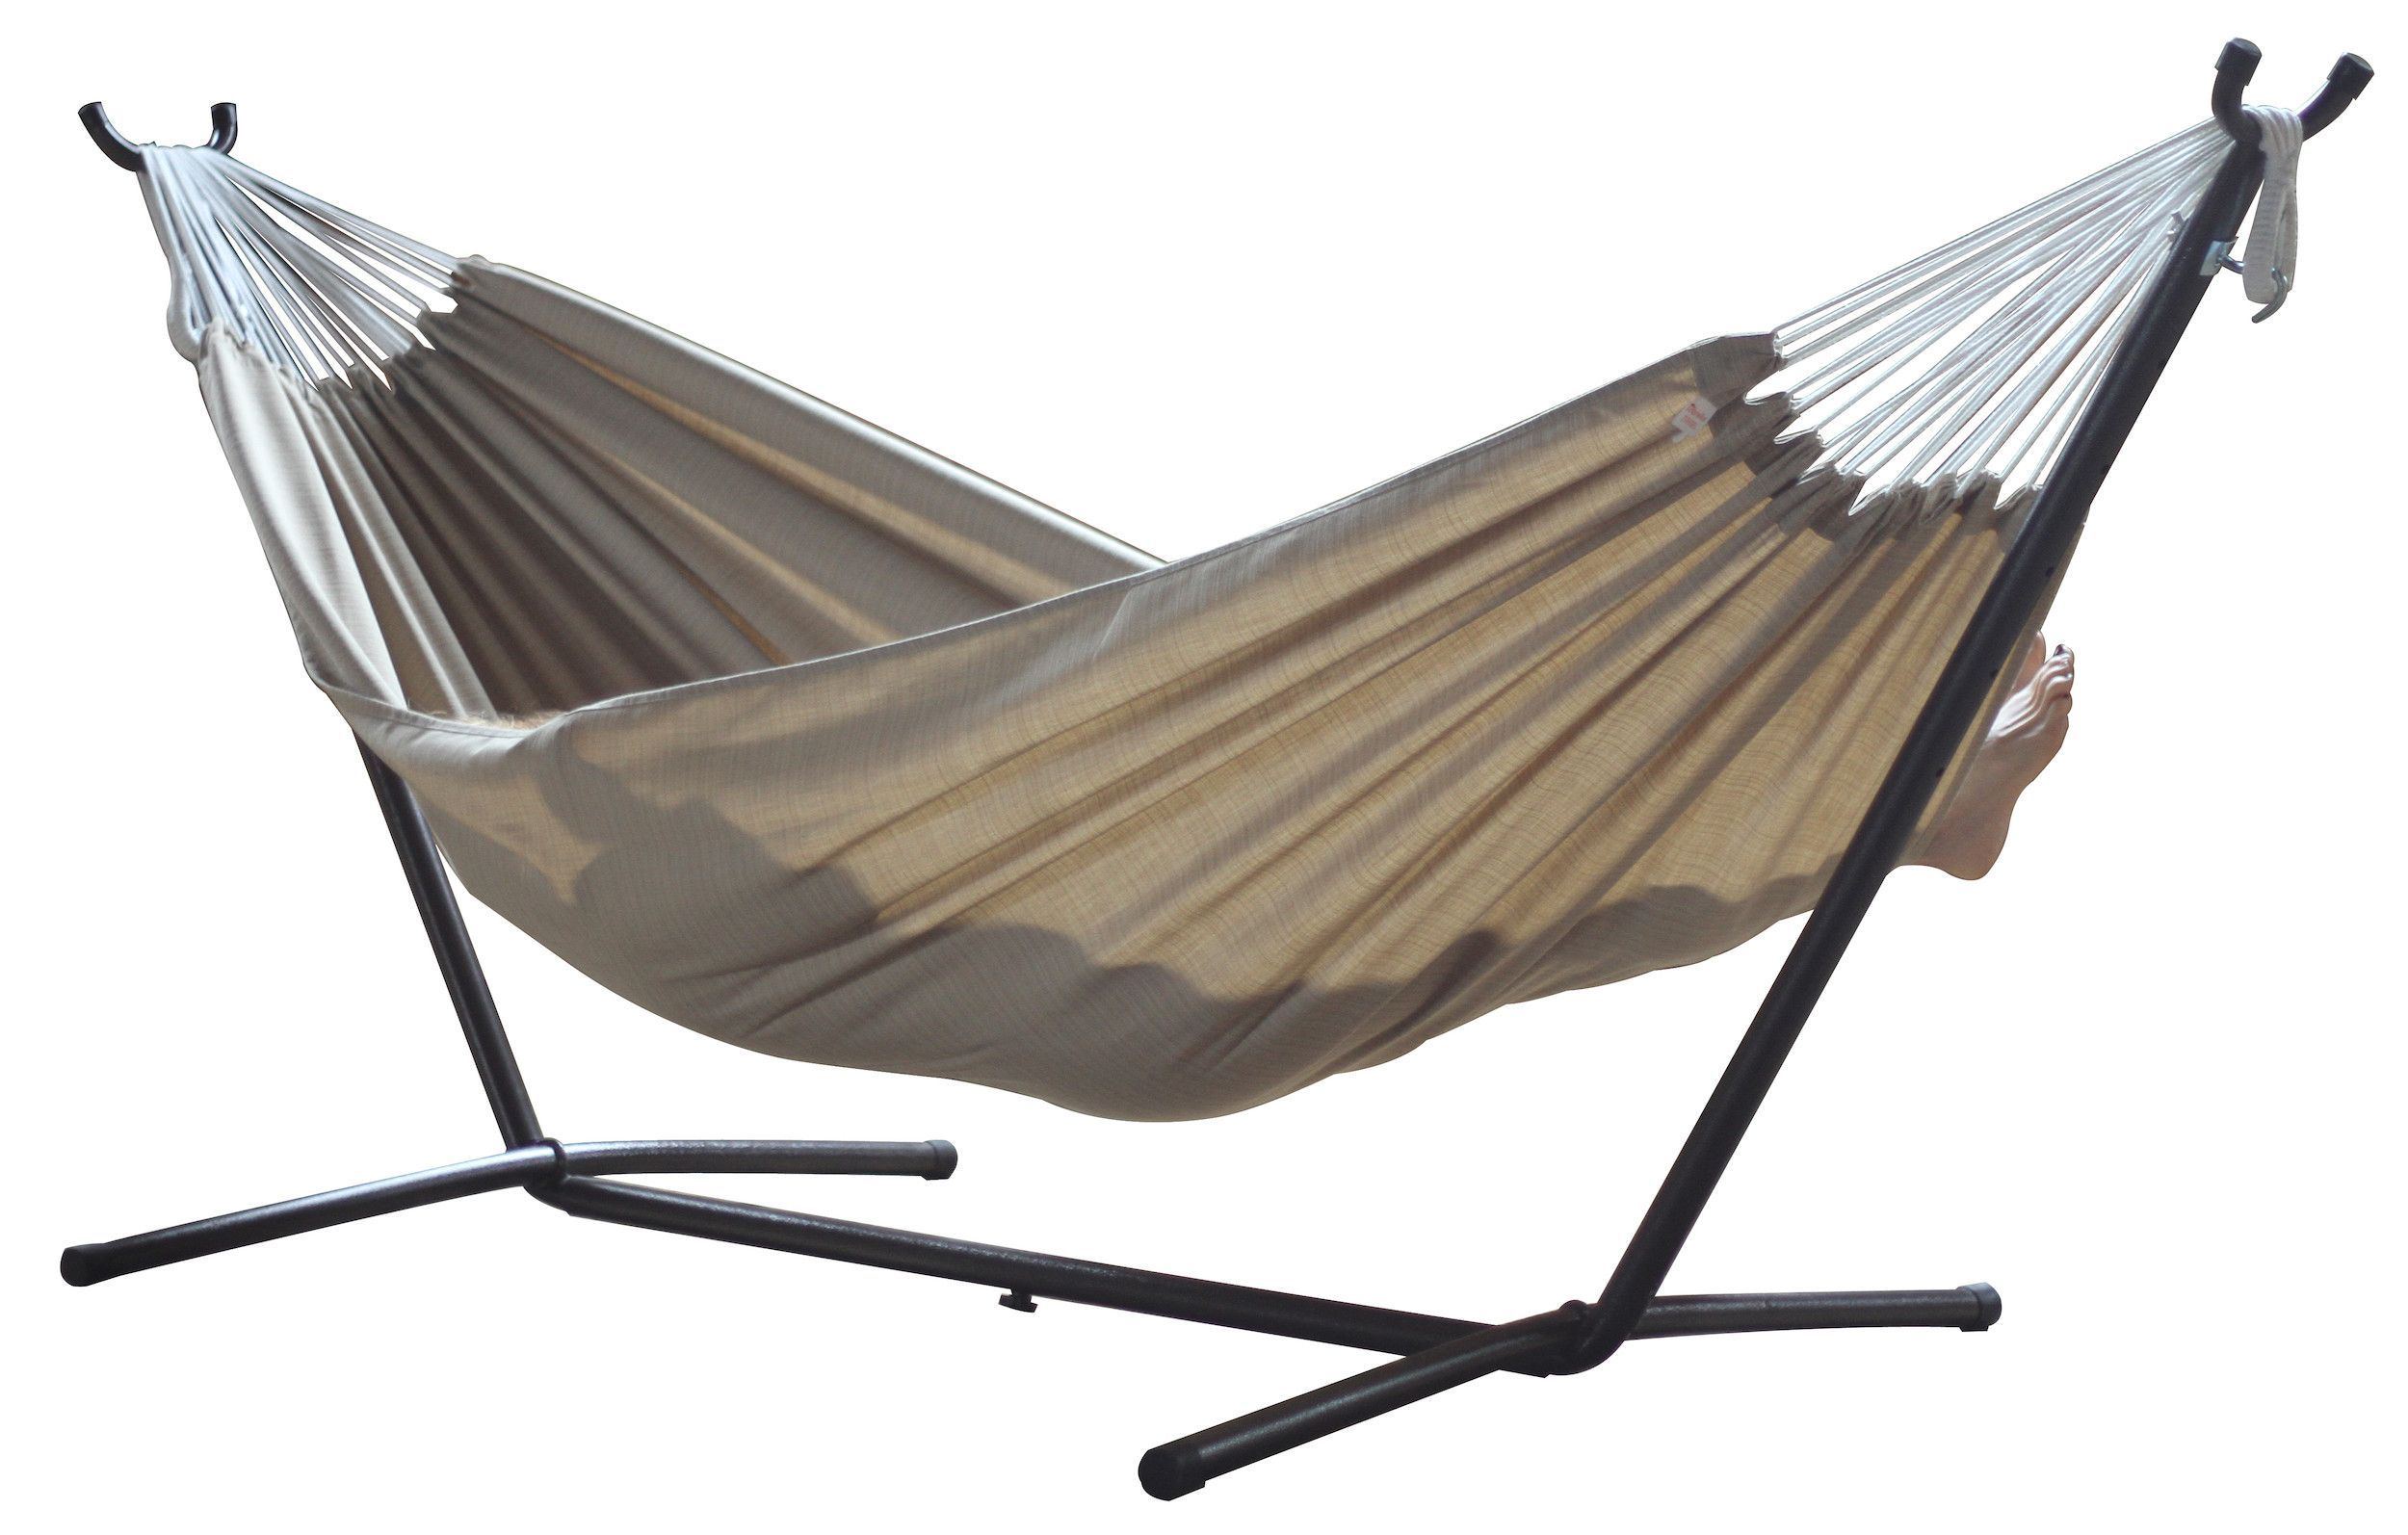 sunbrella hammock with stand  9 foot  sunbrella hammock with stand  9 foot    double hammock and products  rh   pinterest